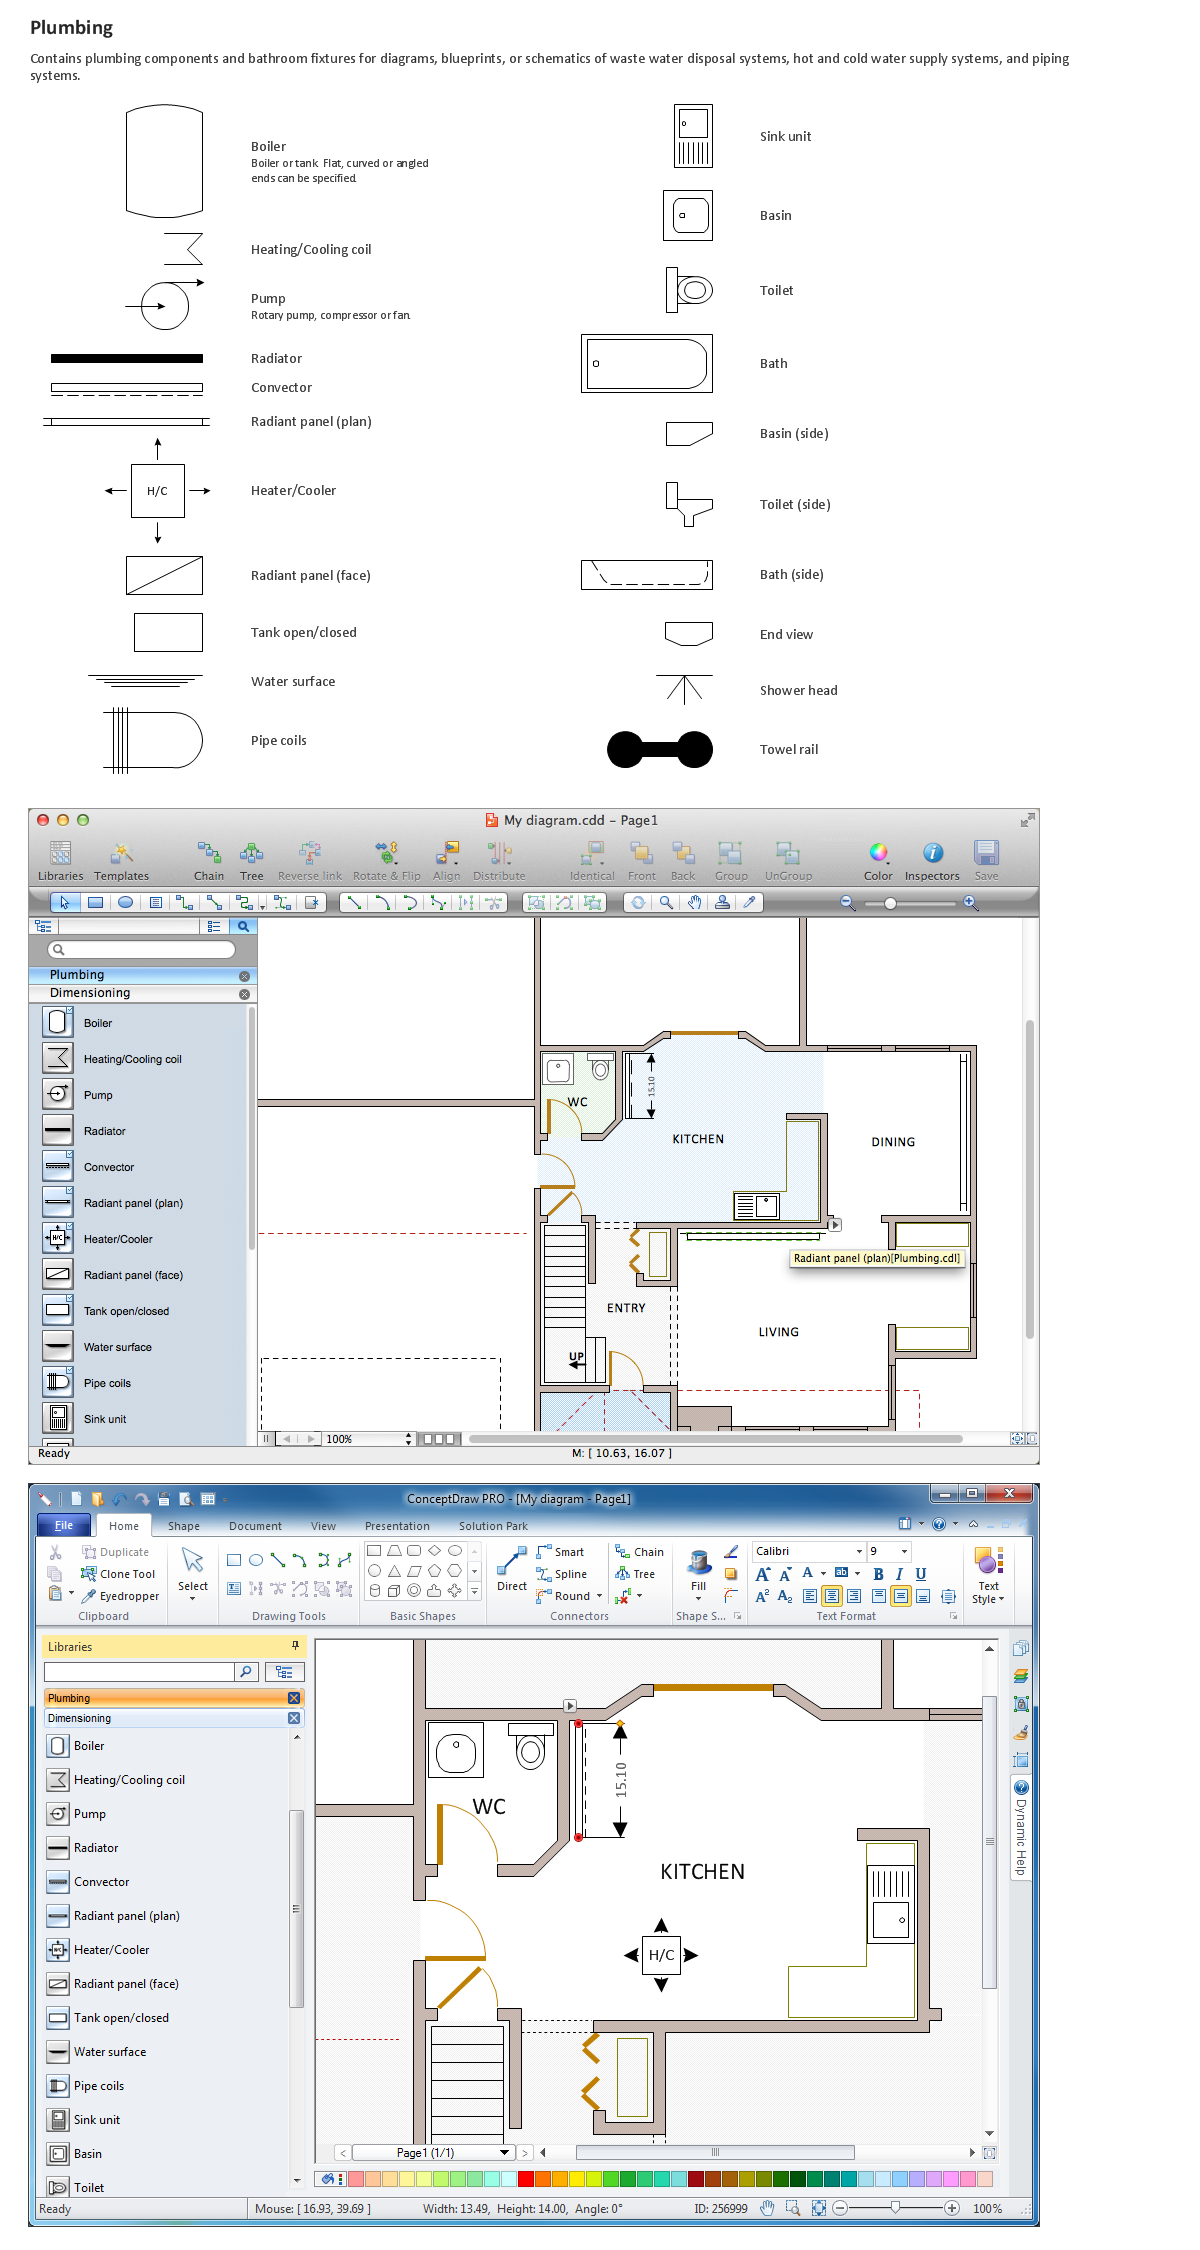 House Electrical Plan Software Diagram Wire And Technical Data In A Pdf File Of The Building Drawing Tools Design Elements Plumbing